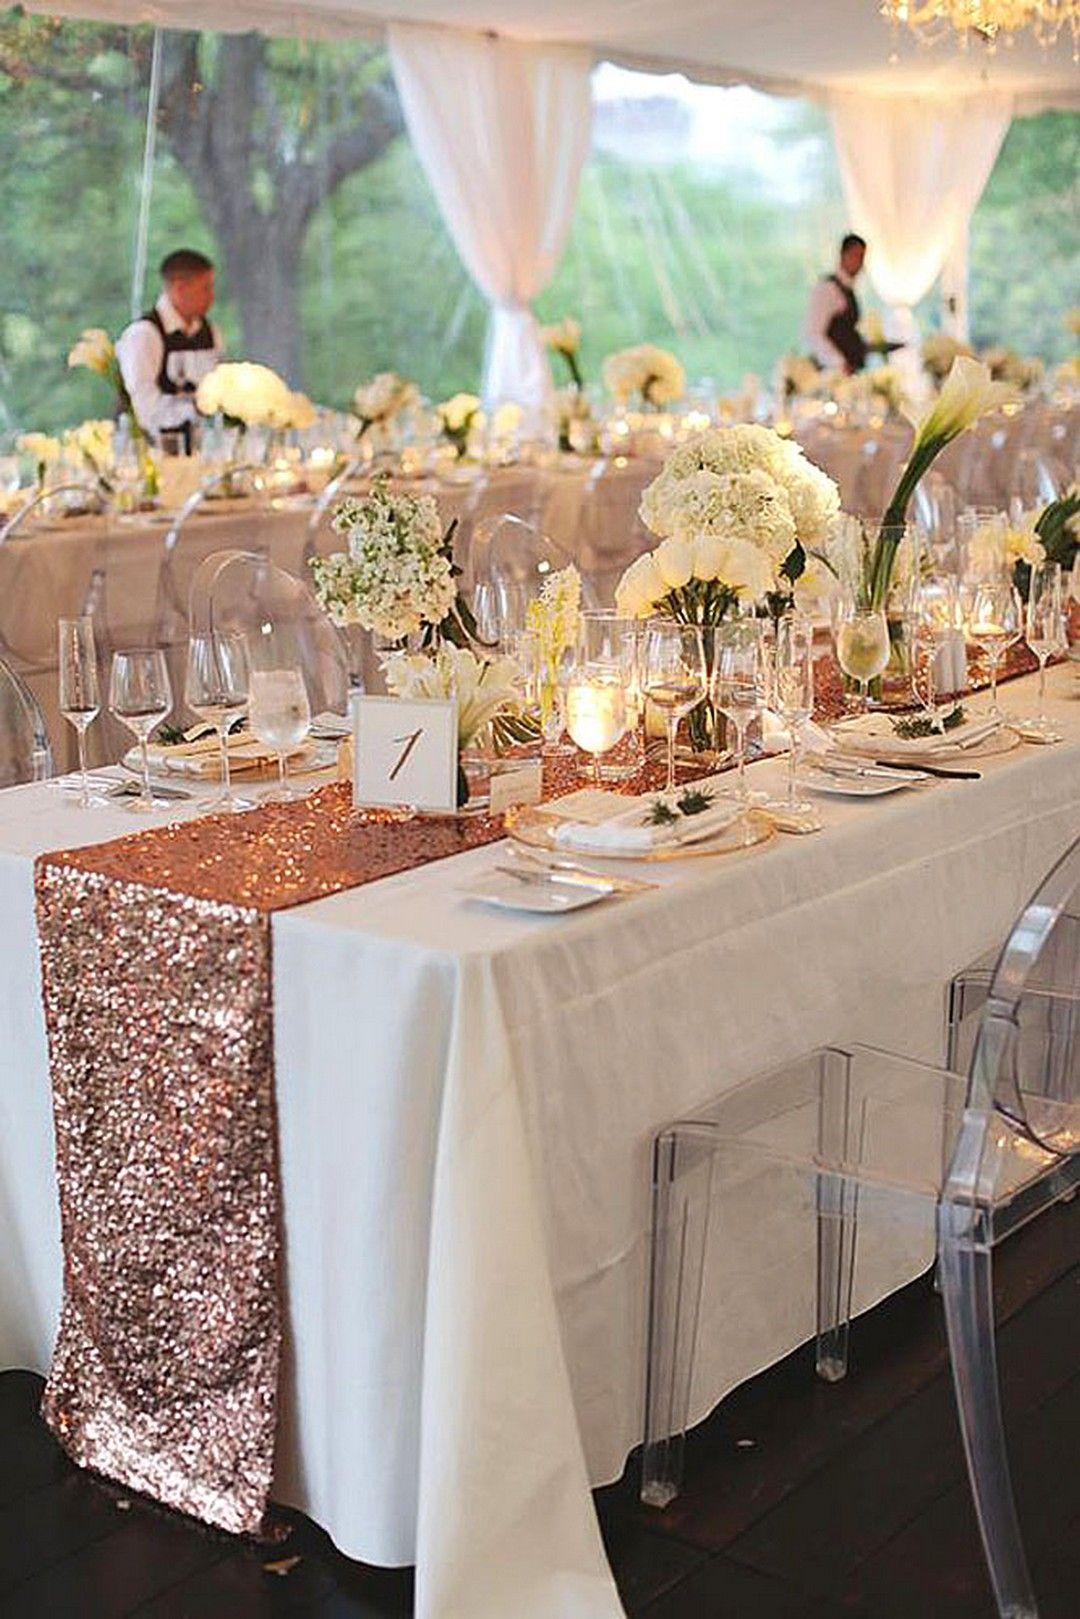 Awesome 99 DIY Wedding Decoration Ideas To Save Budget For Your Big Day